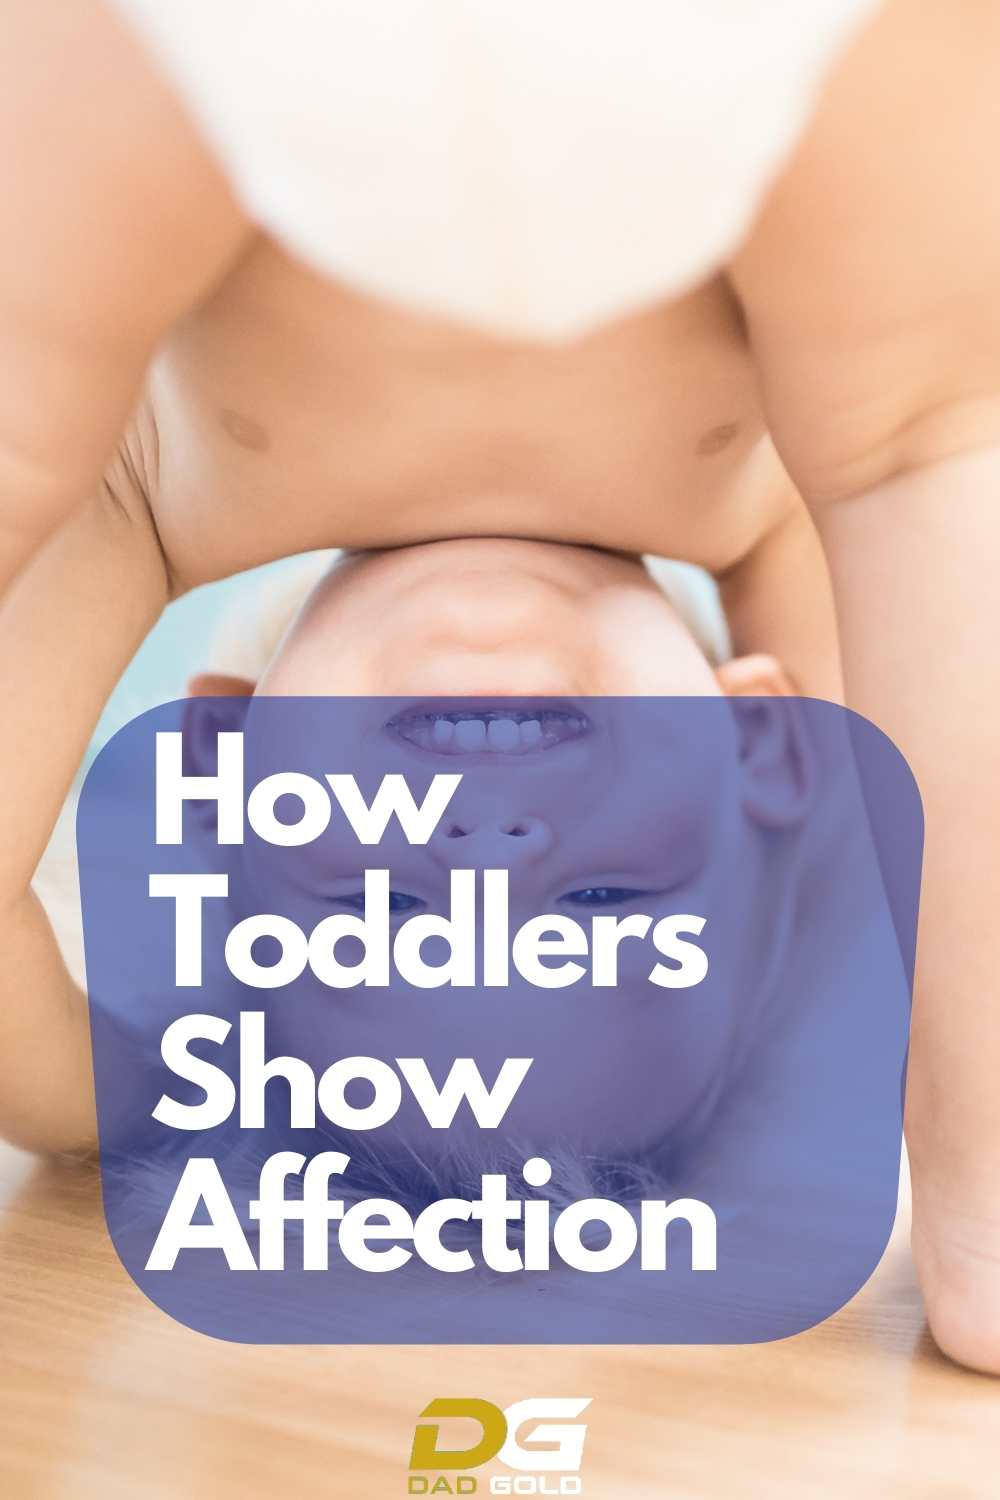 How Toddlers Show Affection